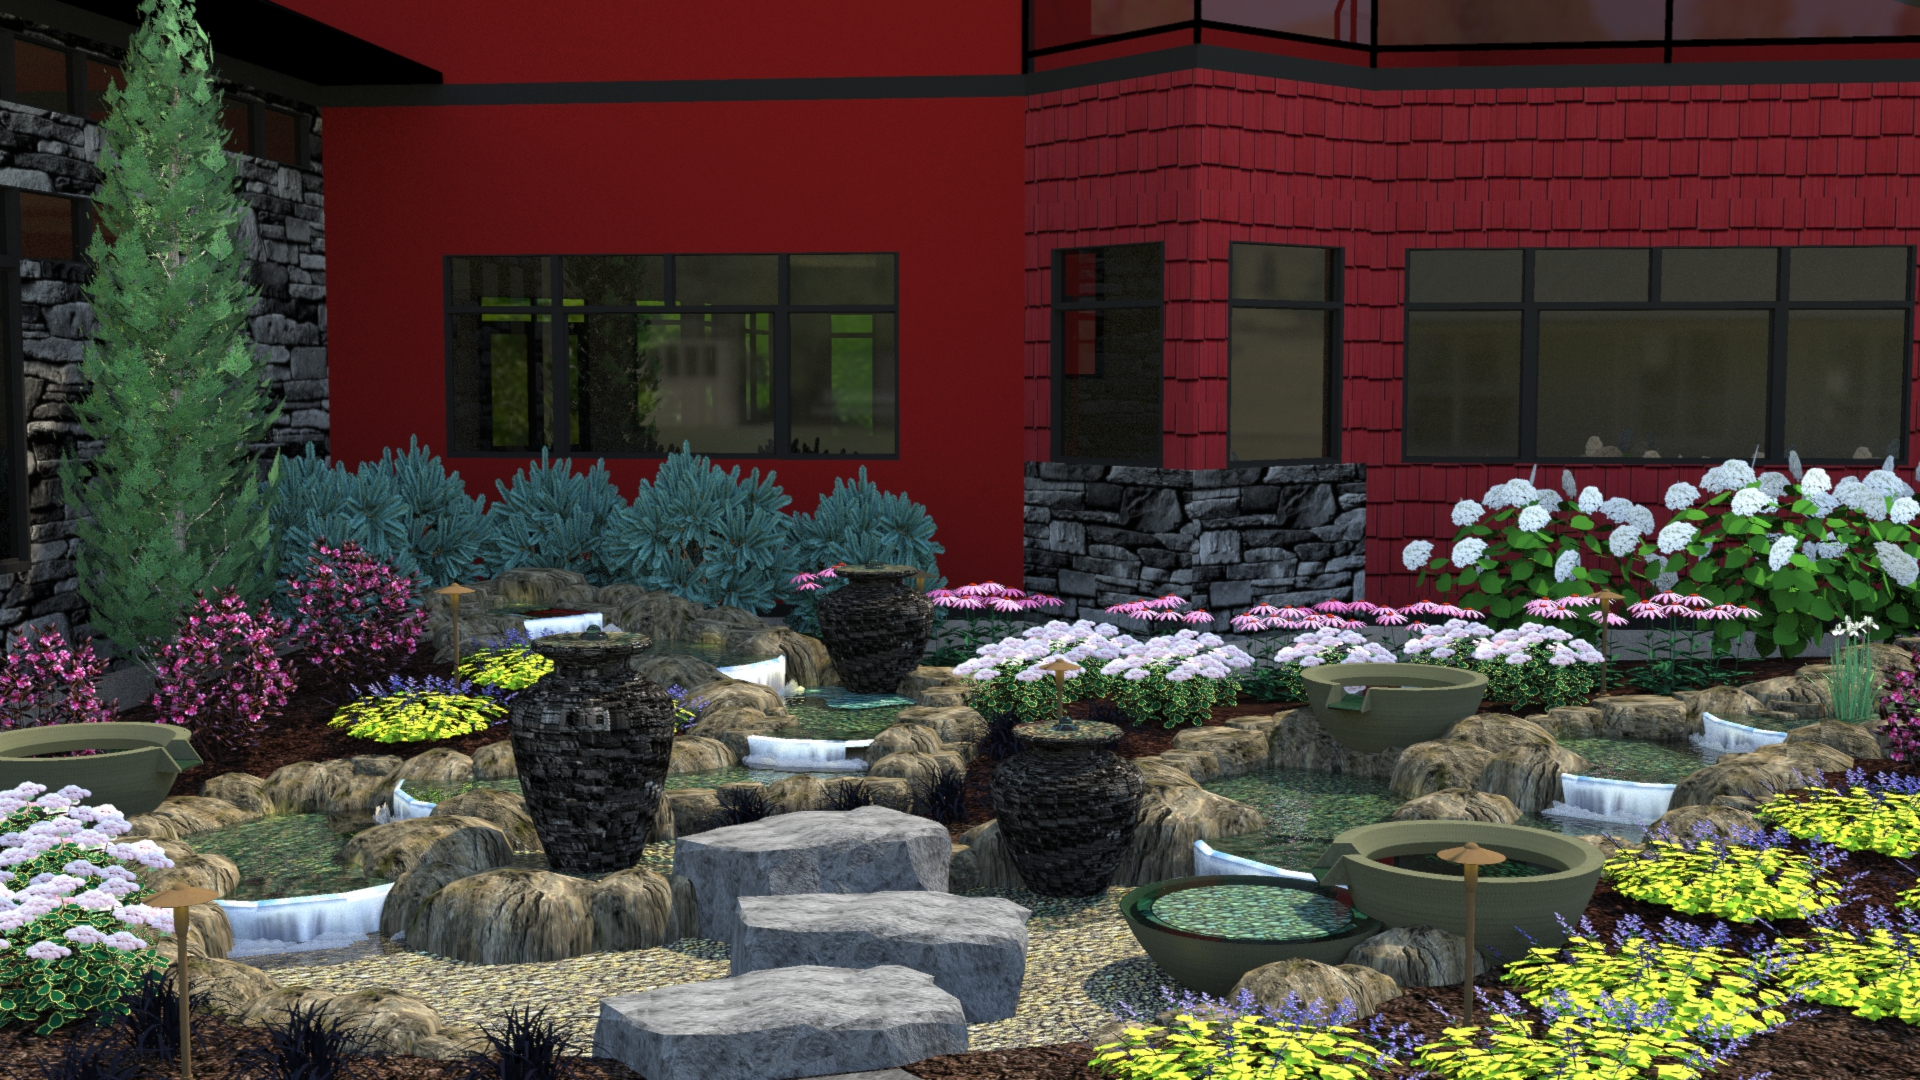 Vicksburg Water Feature Unique Pond Waterfall Landscape Retaining Wall 1